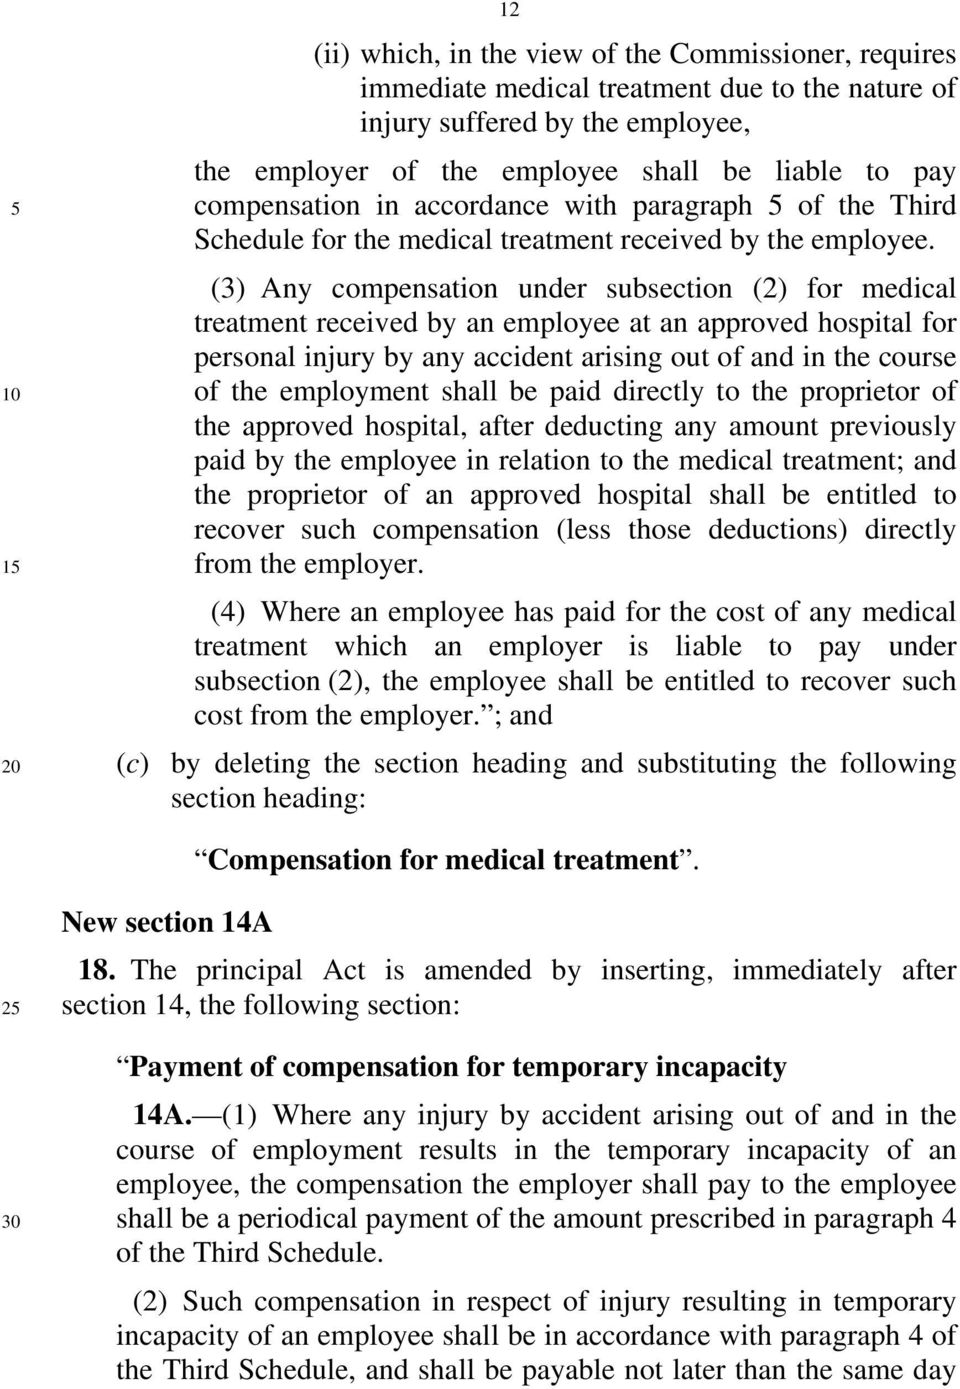 (3) Any compensation under subsection (2) for medical treatment received by an employee at an approved hospital for personal injury by any accident arising out of and in the course of the employment